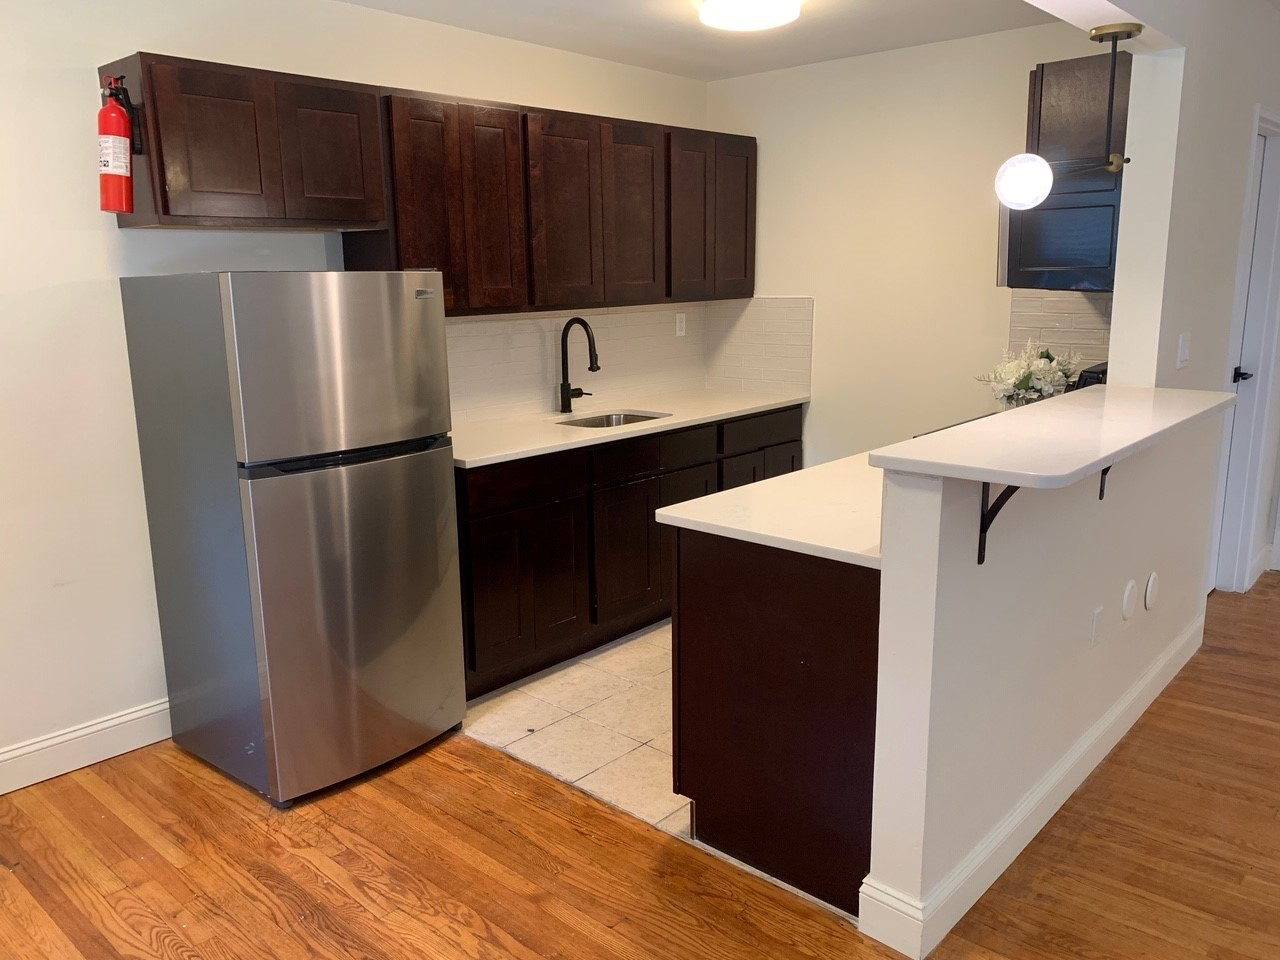 Kitchen at Livingston Gardens Apartments in North Brunswick Township, New Jersey